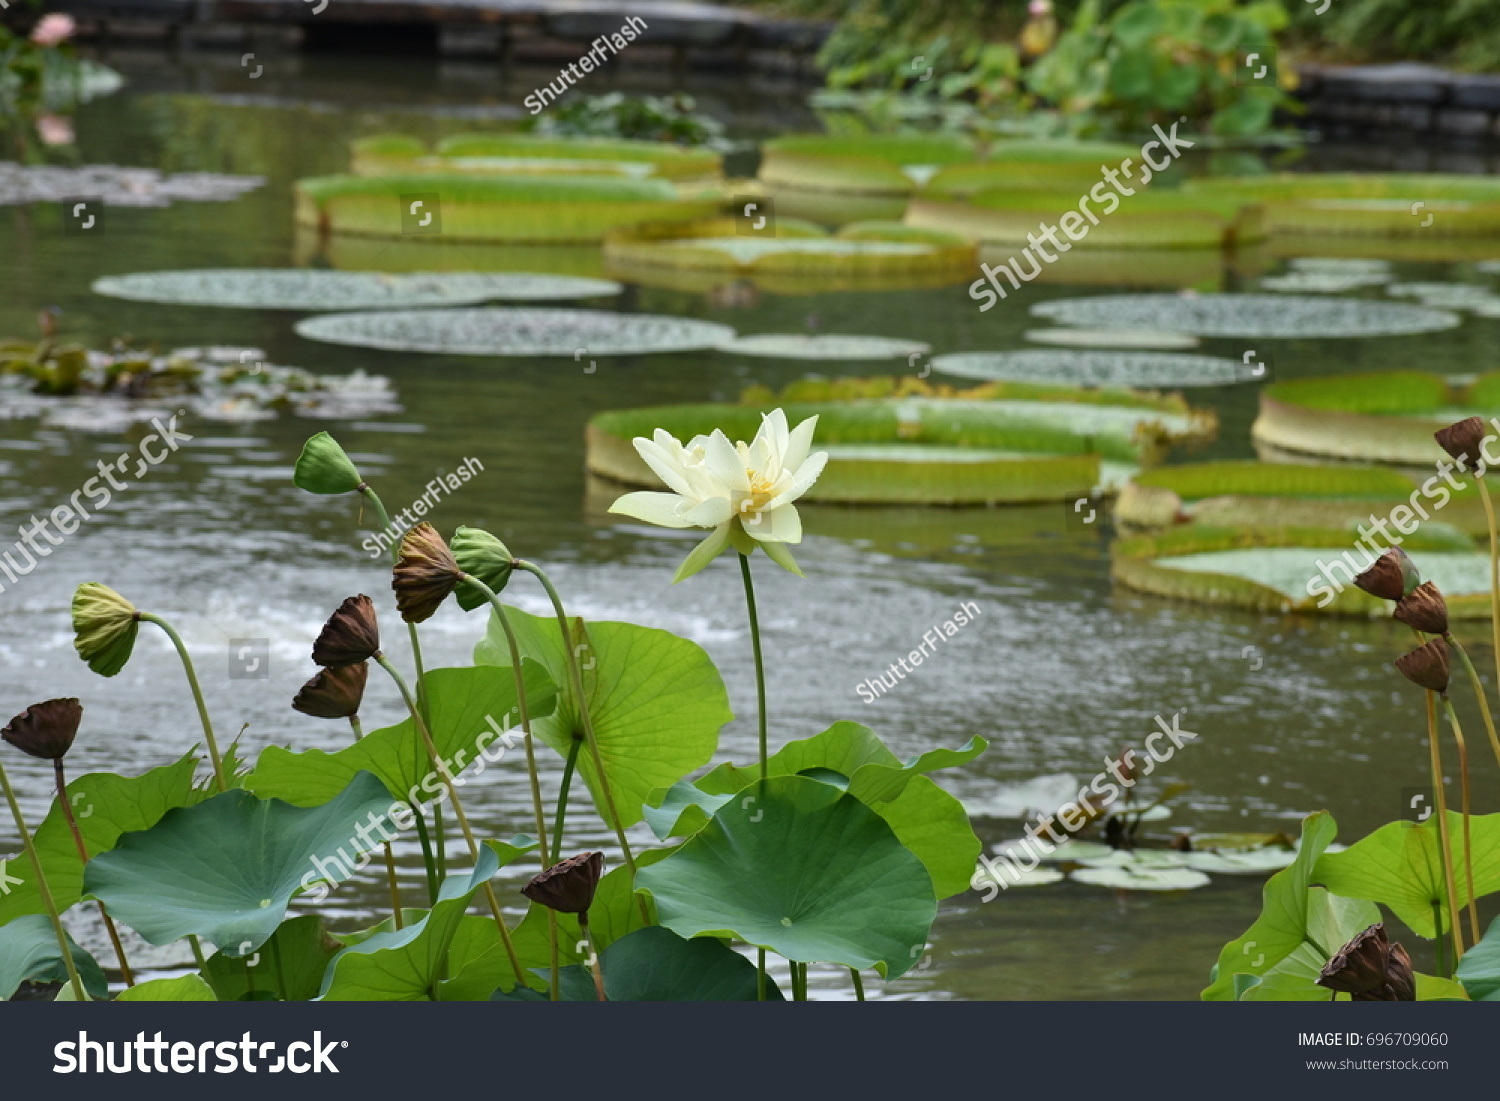 American lotus pale yellow white flower stock photo edit now american lotus or pale yellow white flower with bowl shaped leaves and giant lily pads in izmirmasajfo